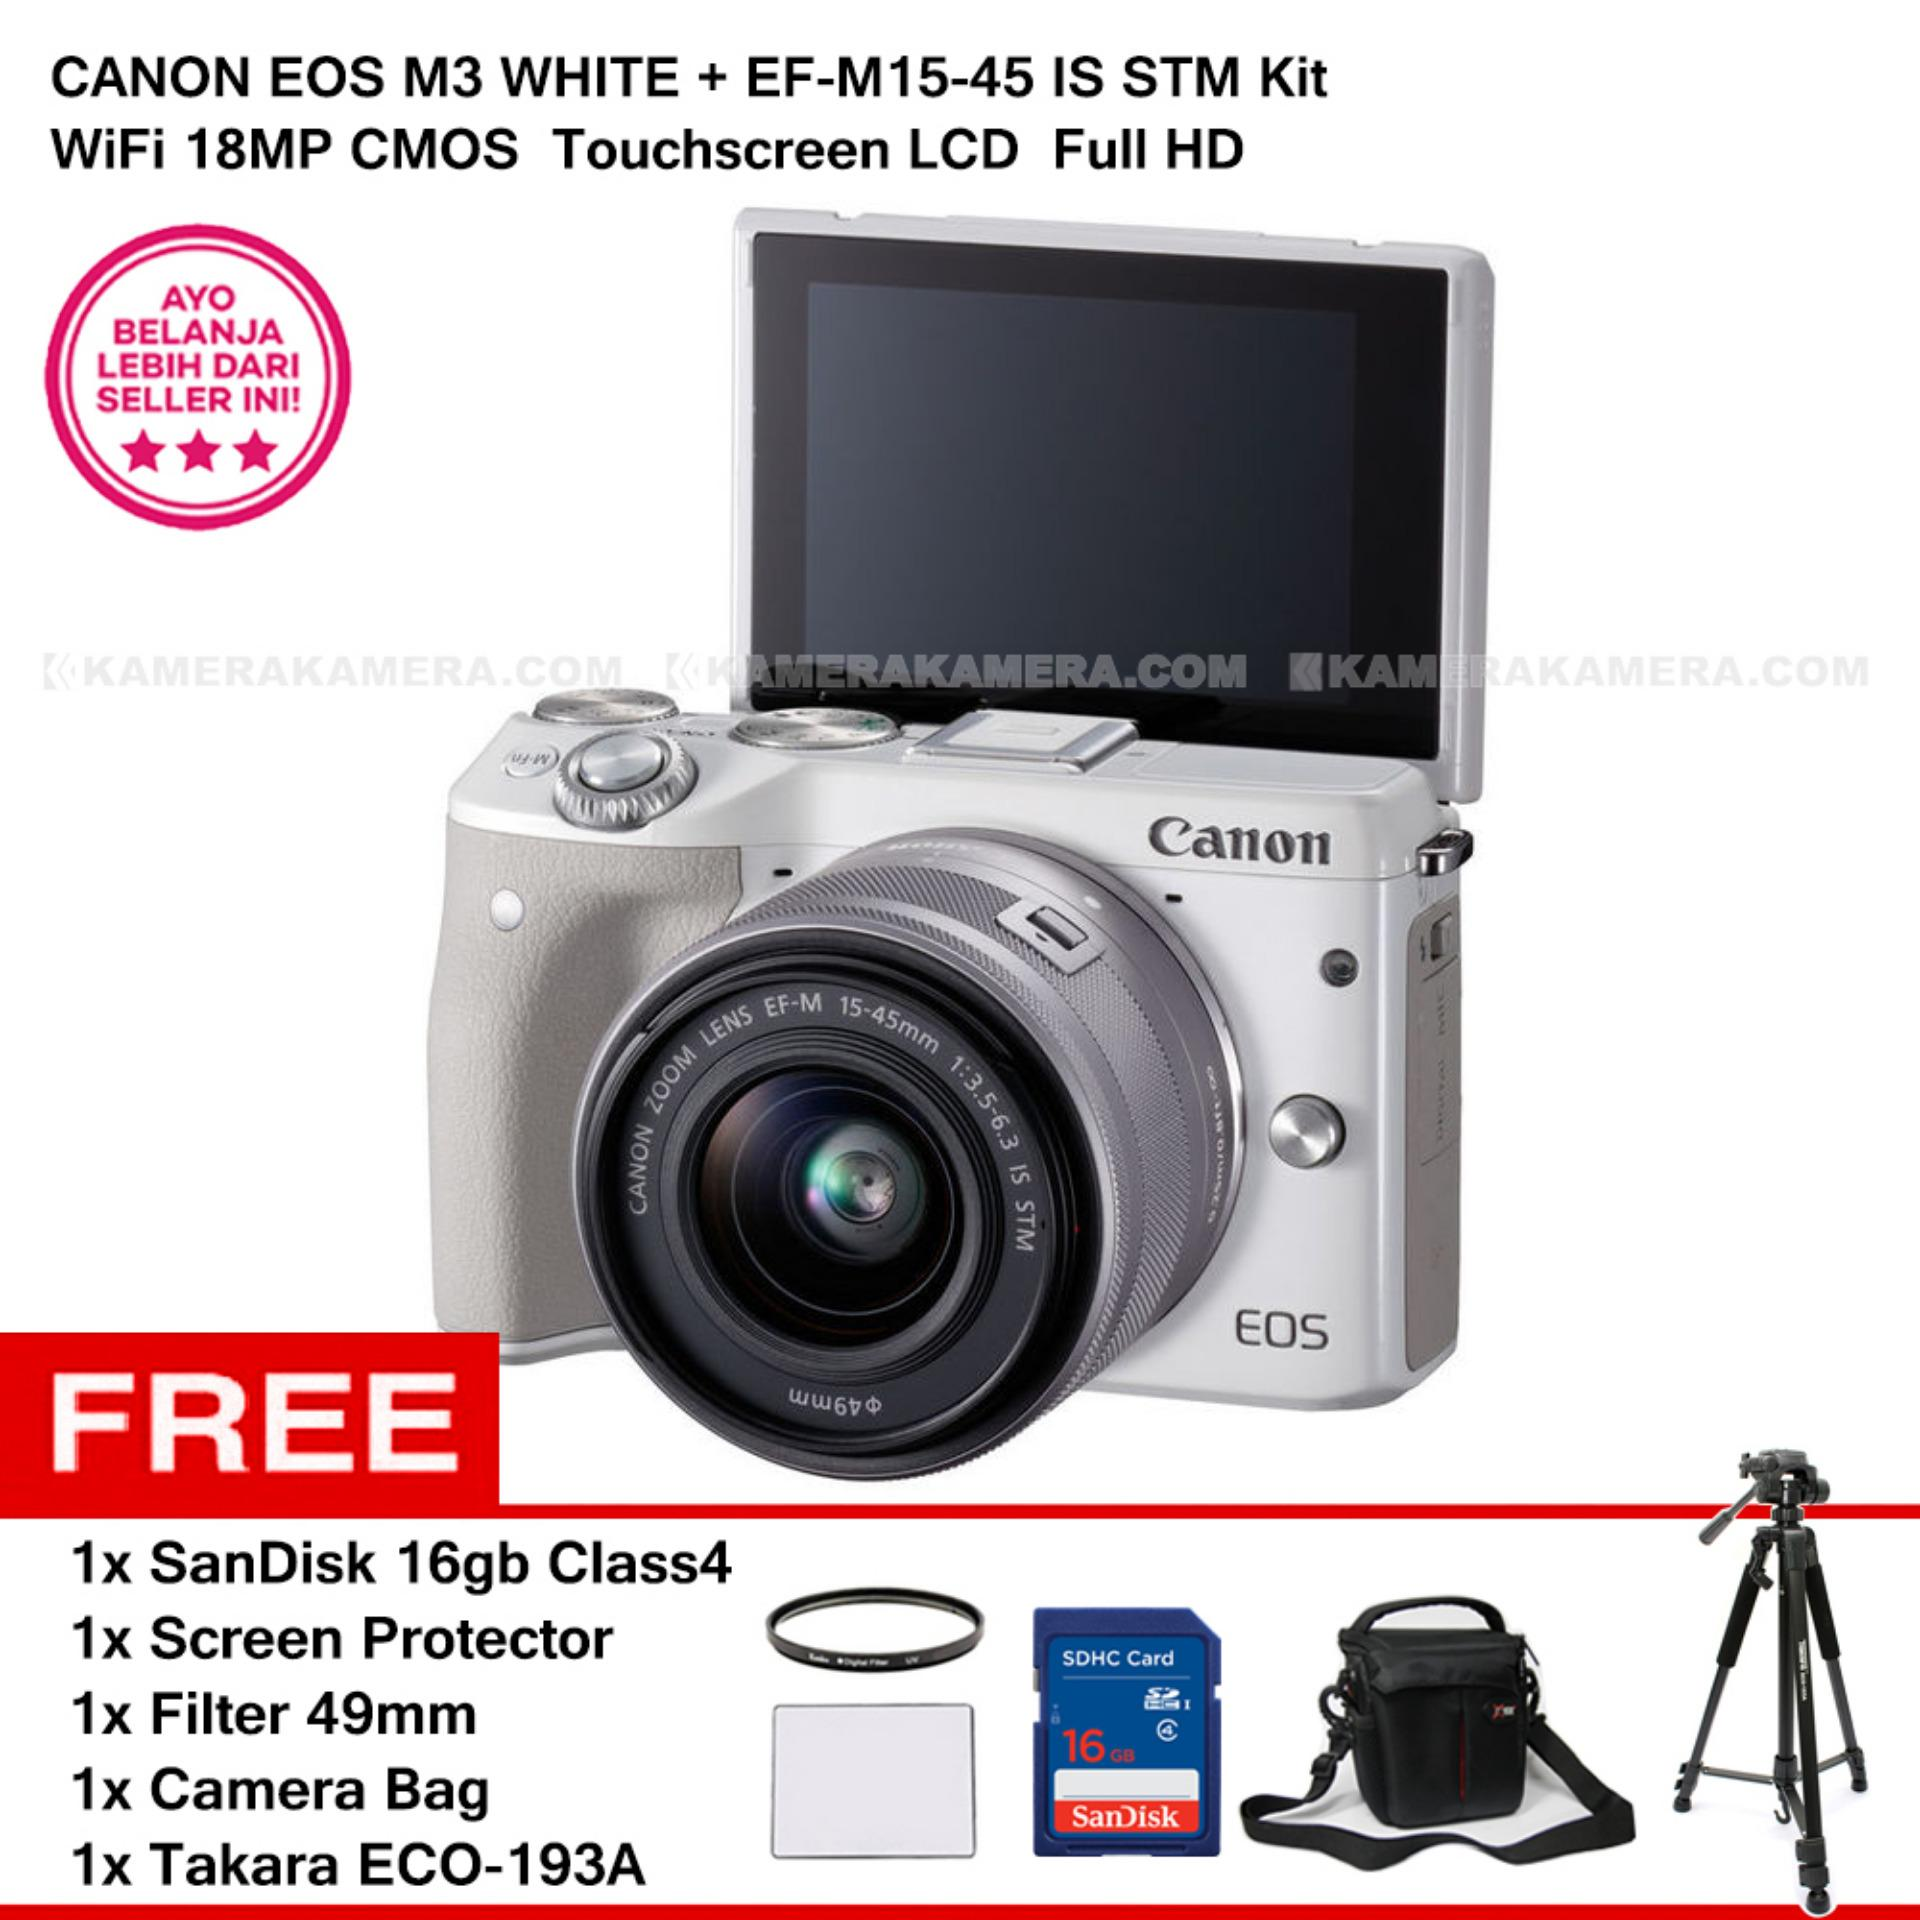 CANON EOS M3 + EF-M15-45 IS STM KIT (WHITE) 24.2